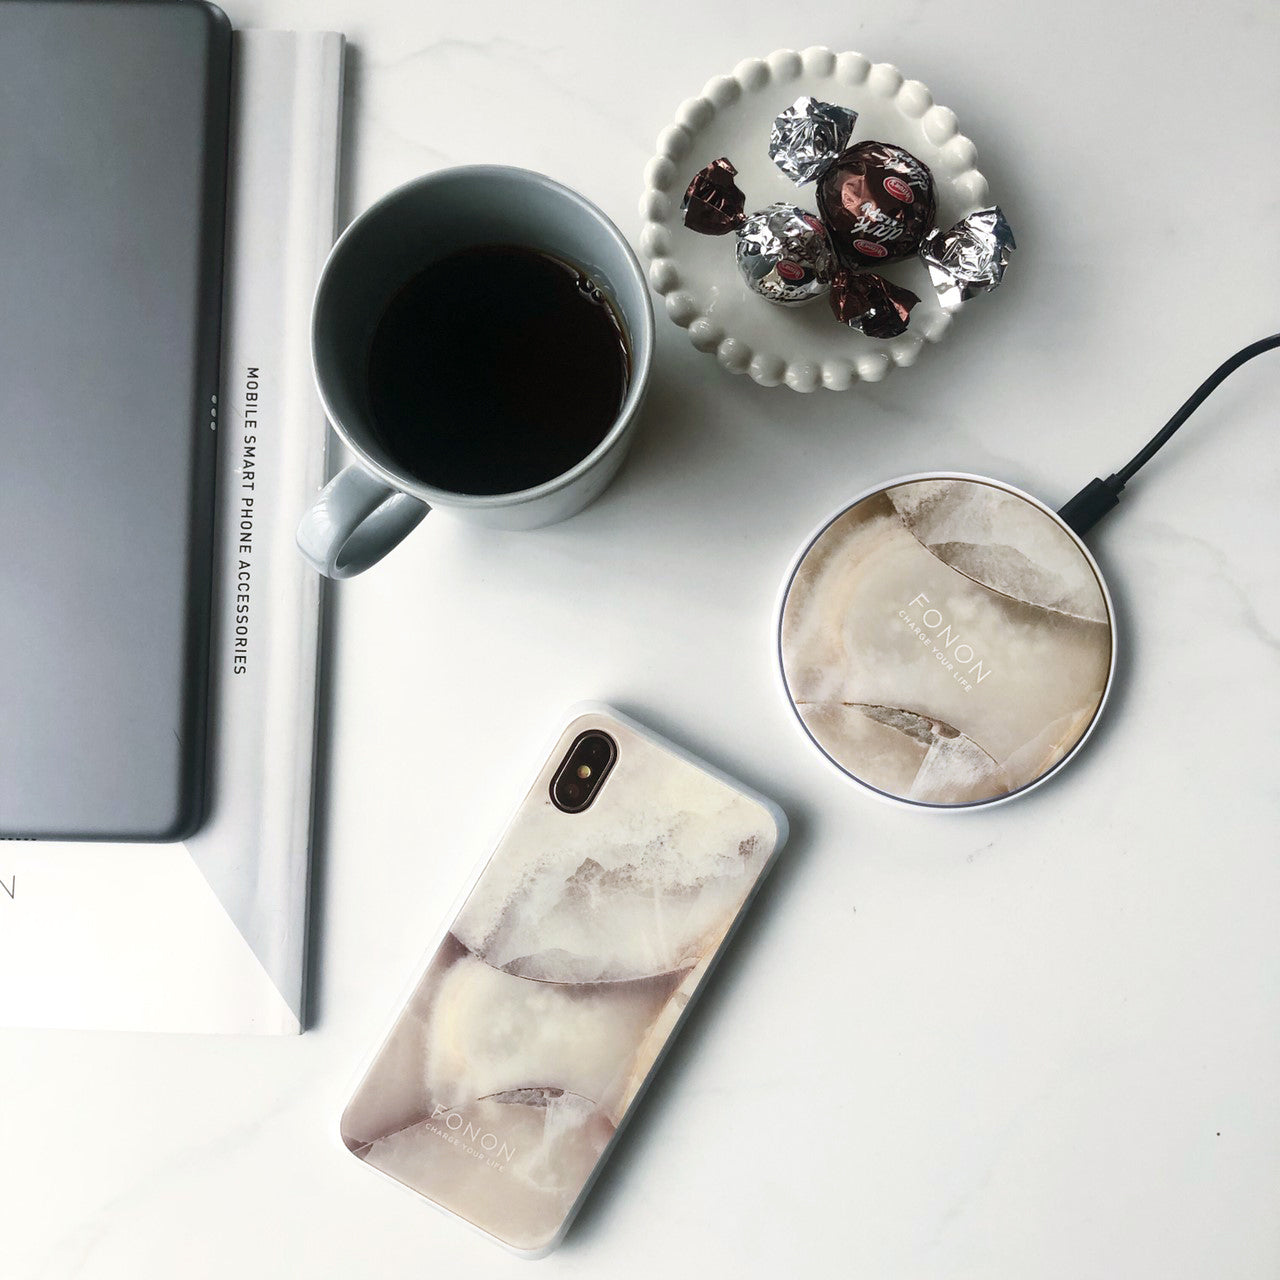 WIRELESS CHARGING BASE - STONE PLANET - White Opal